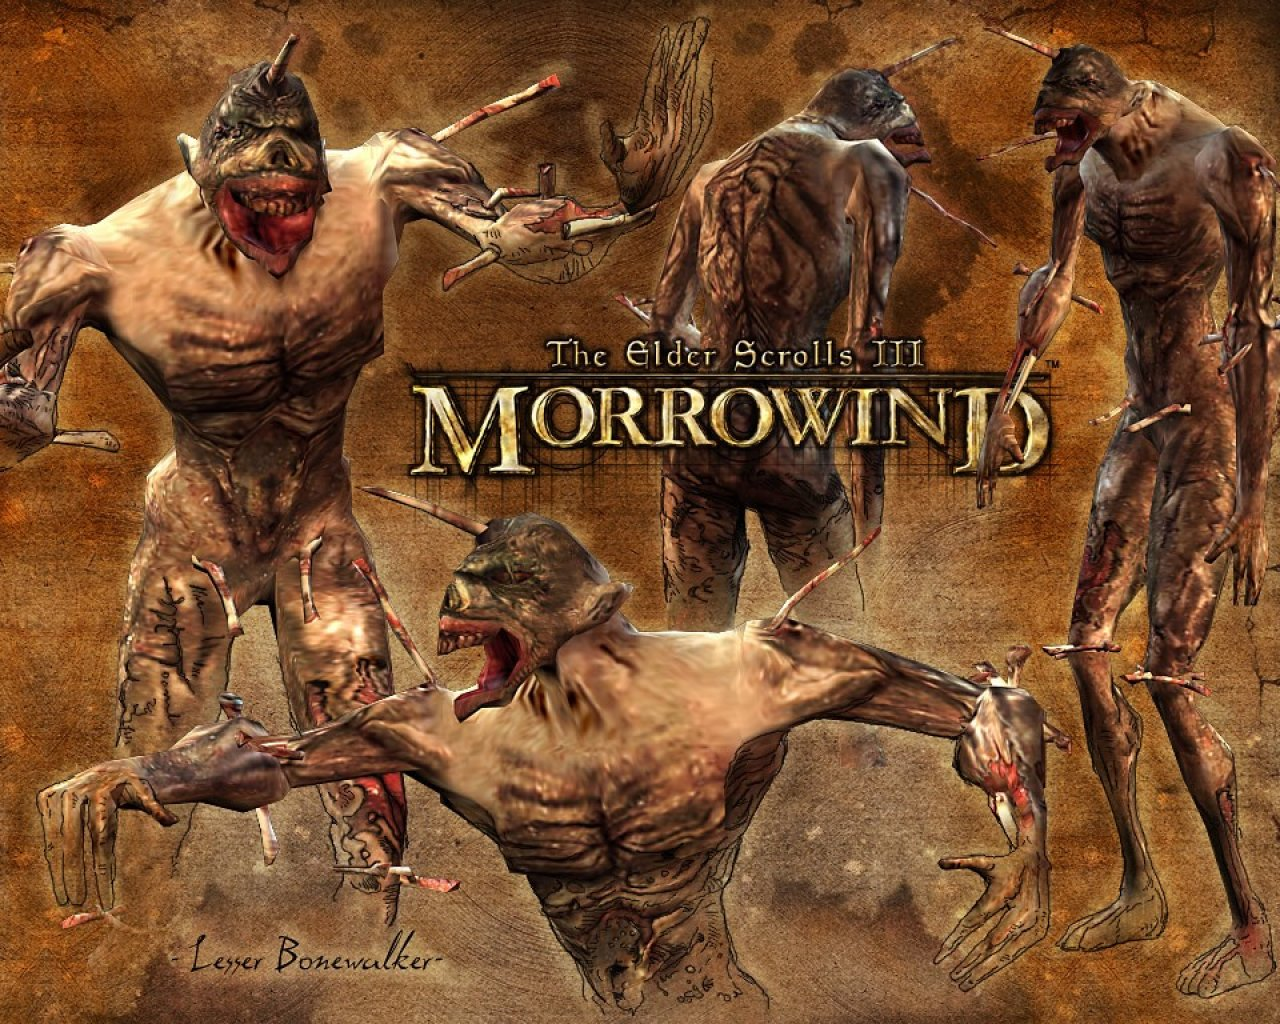 "Wallpaper The Elder Scrolls III: Morrowind ""Lesser bonewalker"""